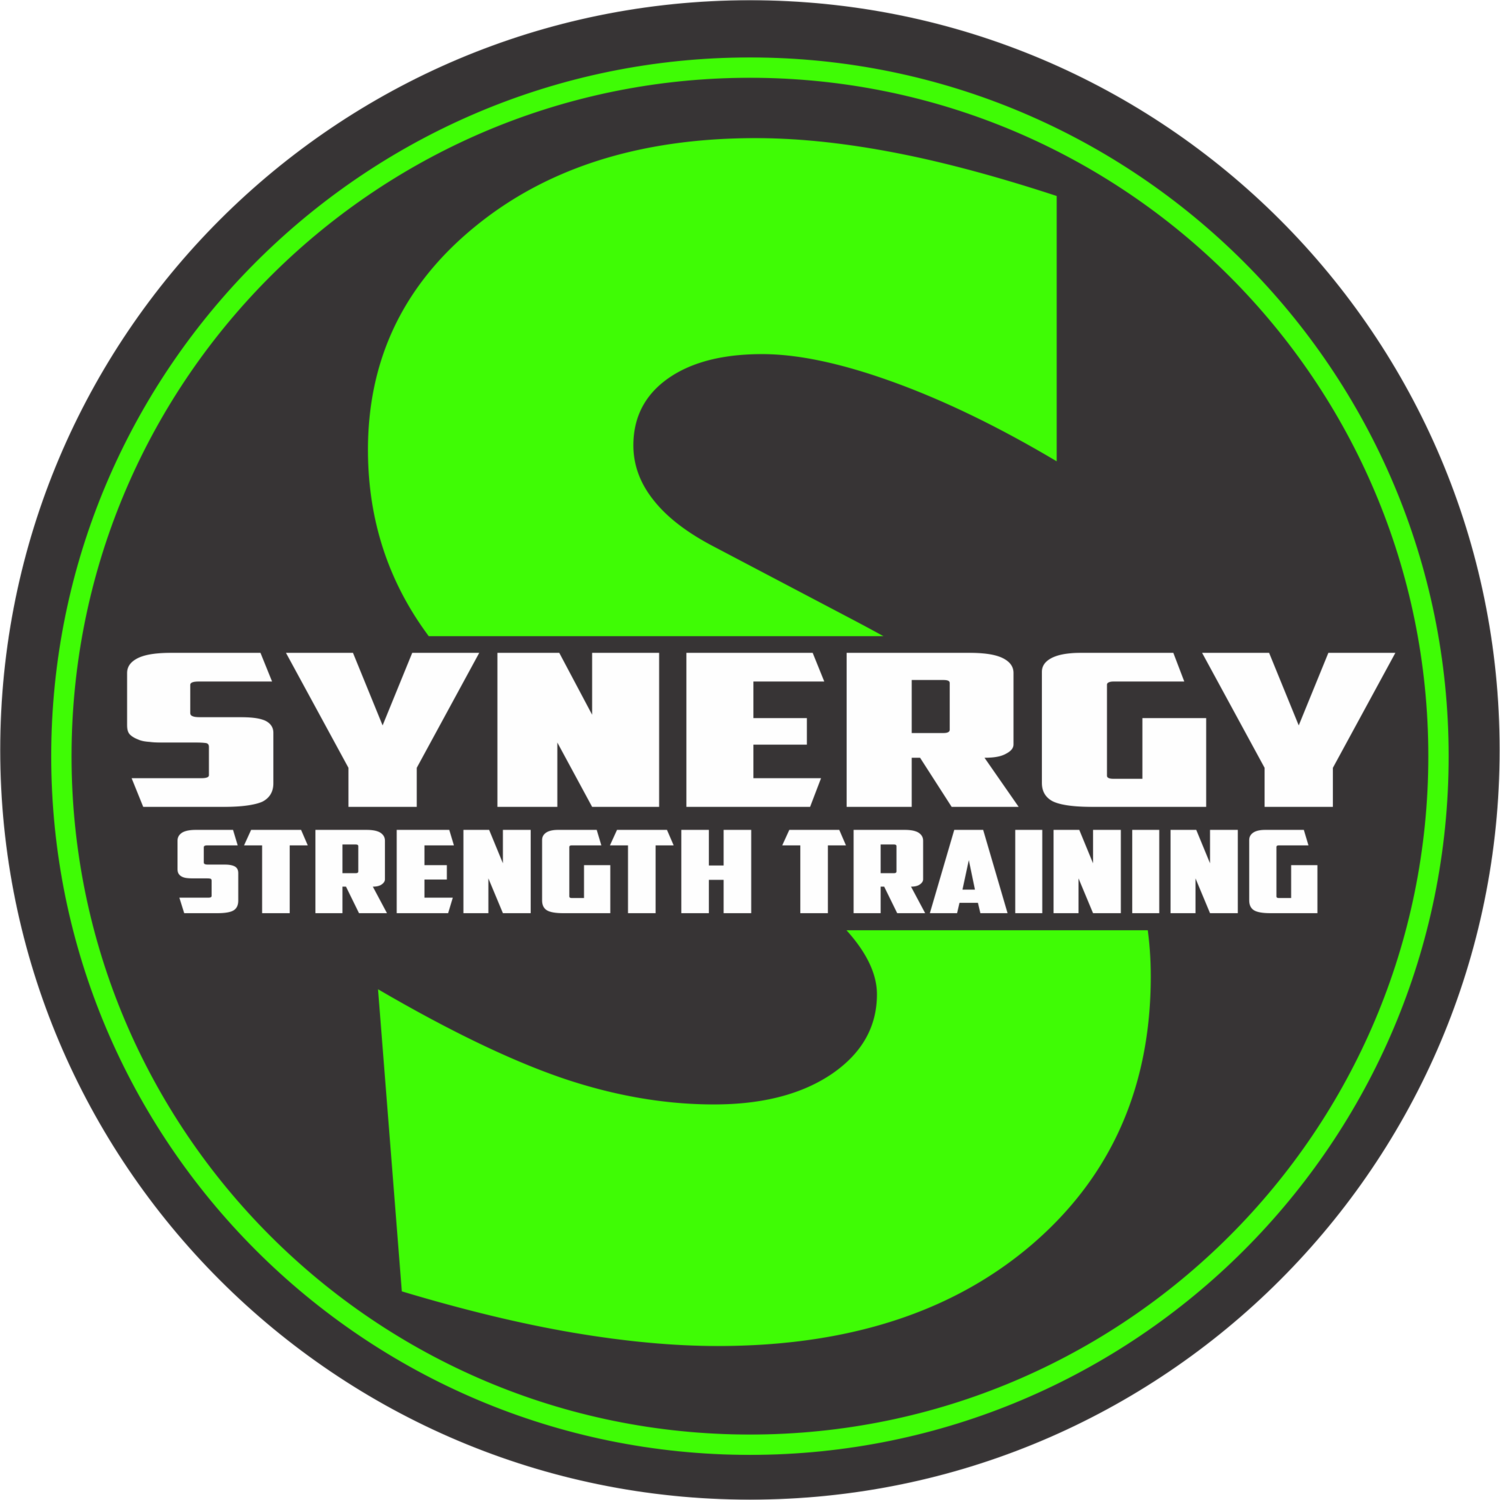 Synergy Strength Training, St. Charles specializing in kettlebell, powerlifting, and calisthenics personal training and group classes